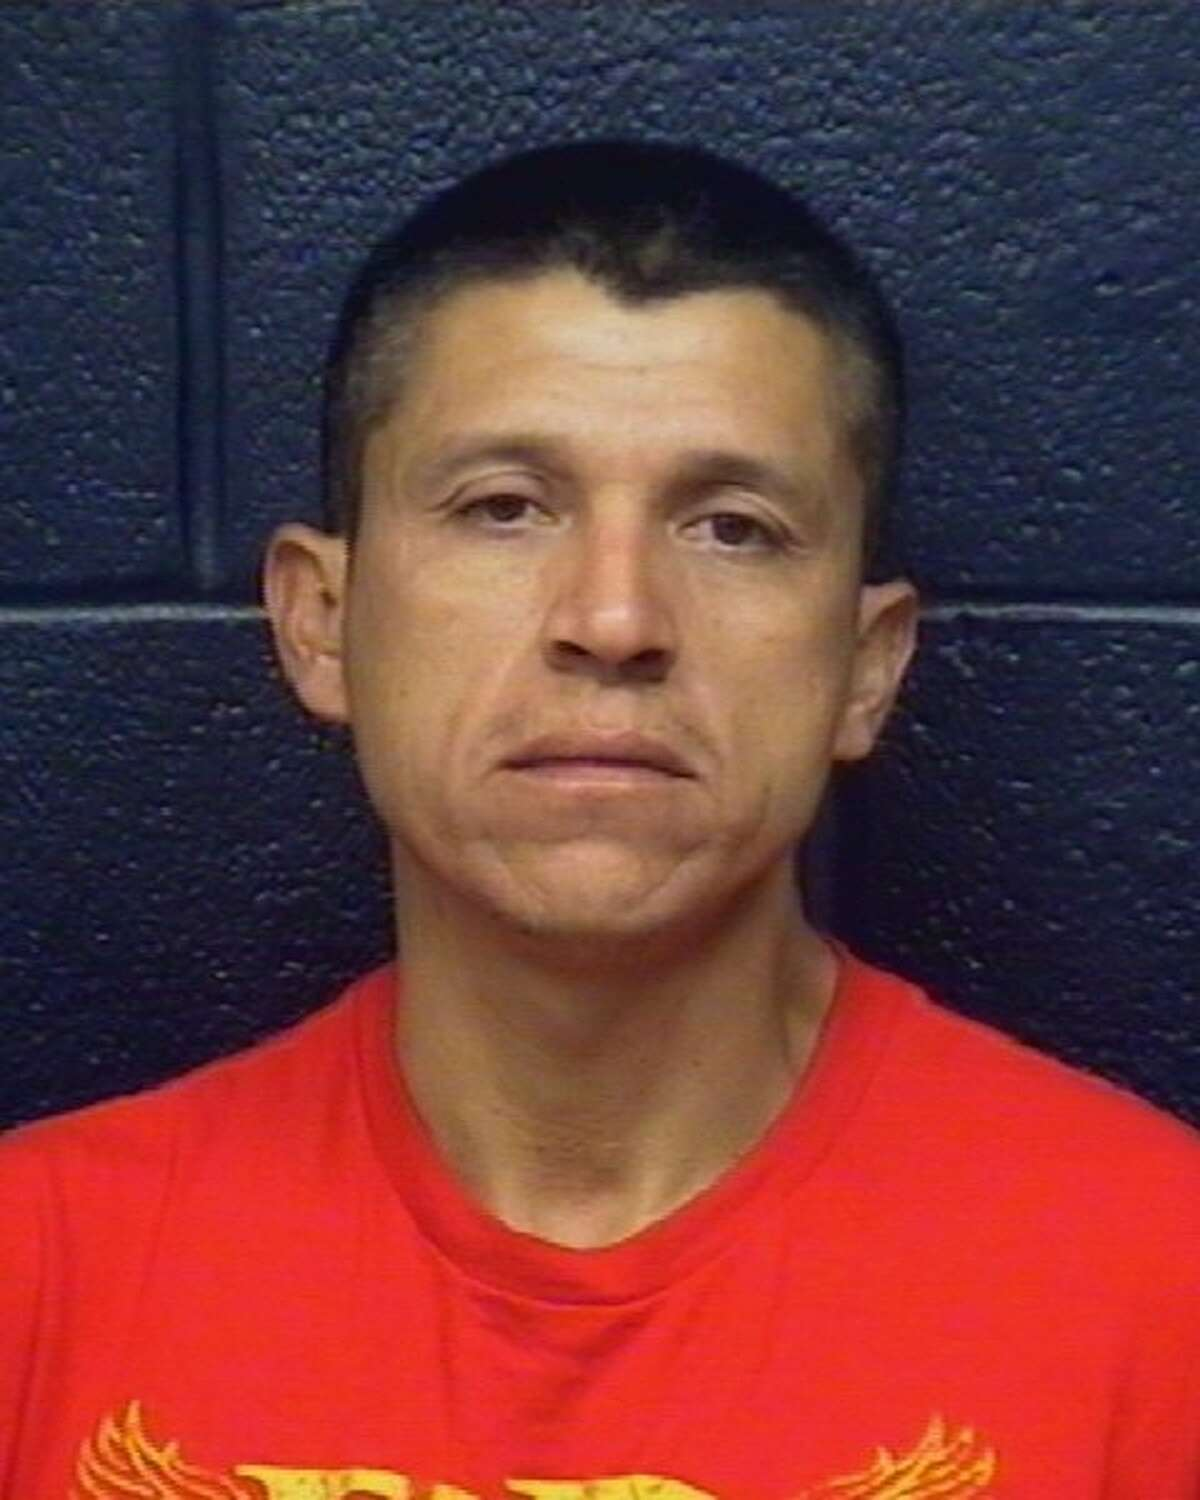 Authorities served arrest warrants on Omar Campos Zamora, 34, on Friday charging him with burglary of a building and theft.